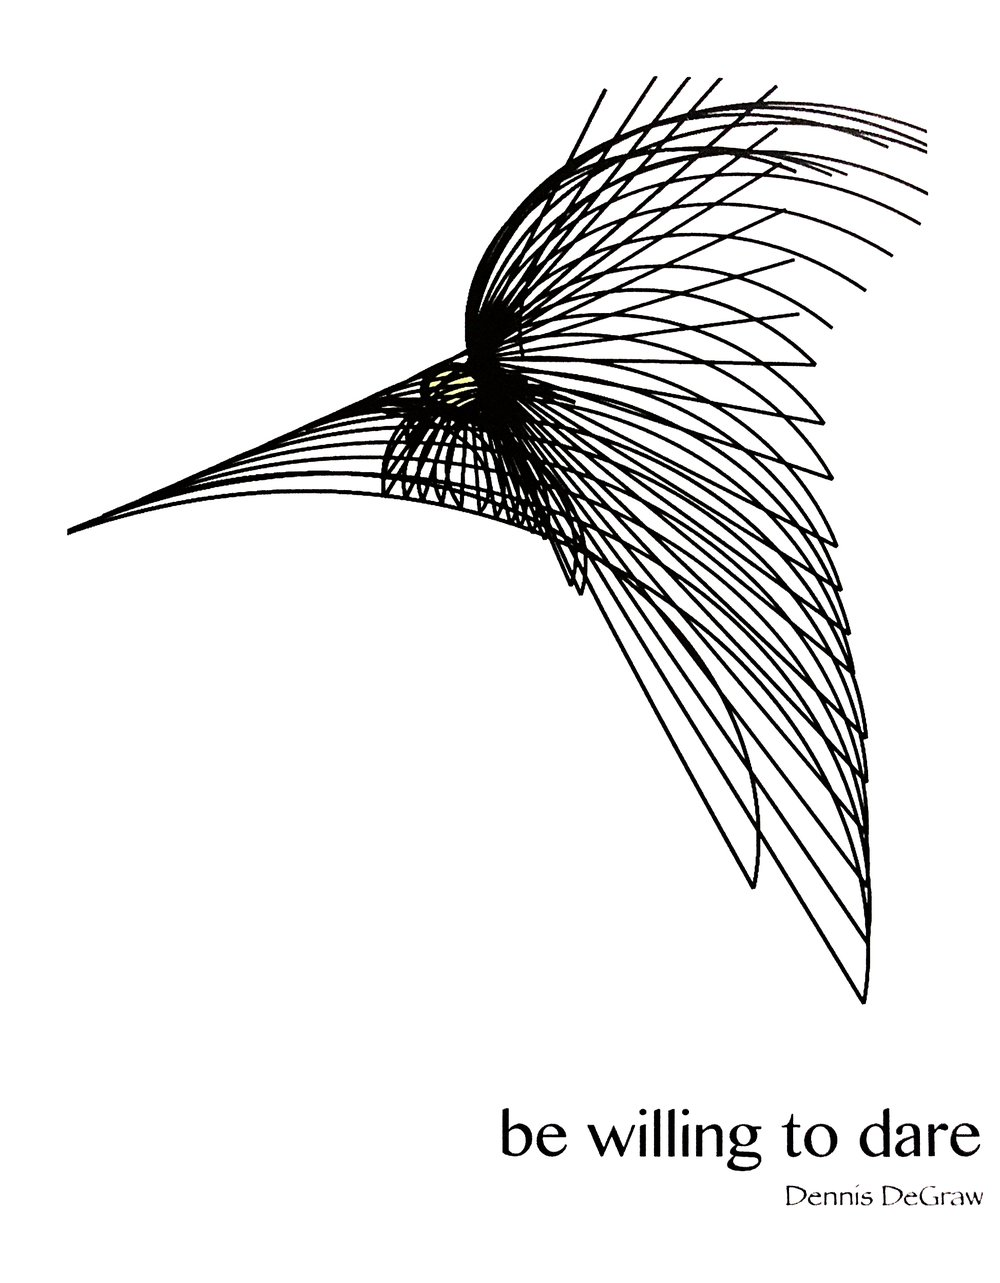 Be Willing To Dare, a collection of poems recently published in book form. Thriving on the    testament of truth, pursuit and the triumph of resistance, the book is a manifestation of words on the beauty of life and dreams captured by believing. Be Willing To Dare is an    expanded version of DeGraws entry into new territories that represent his duality as an artist and his unique contribution to the art world.